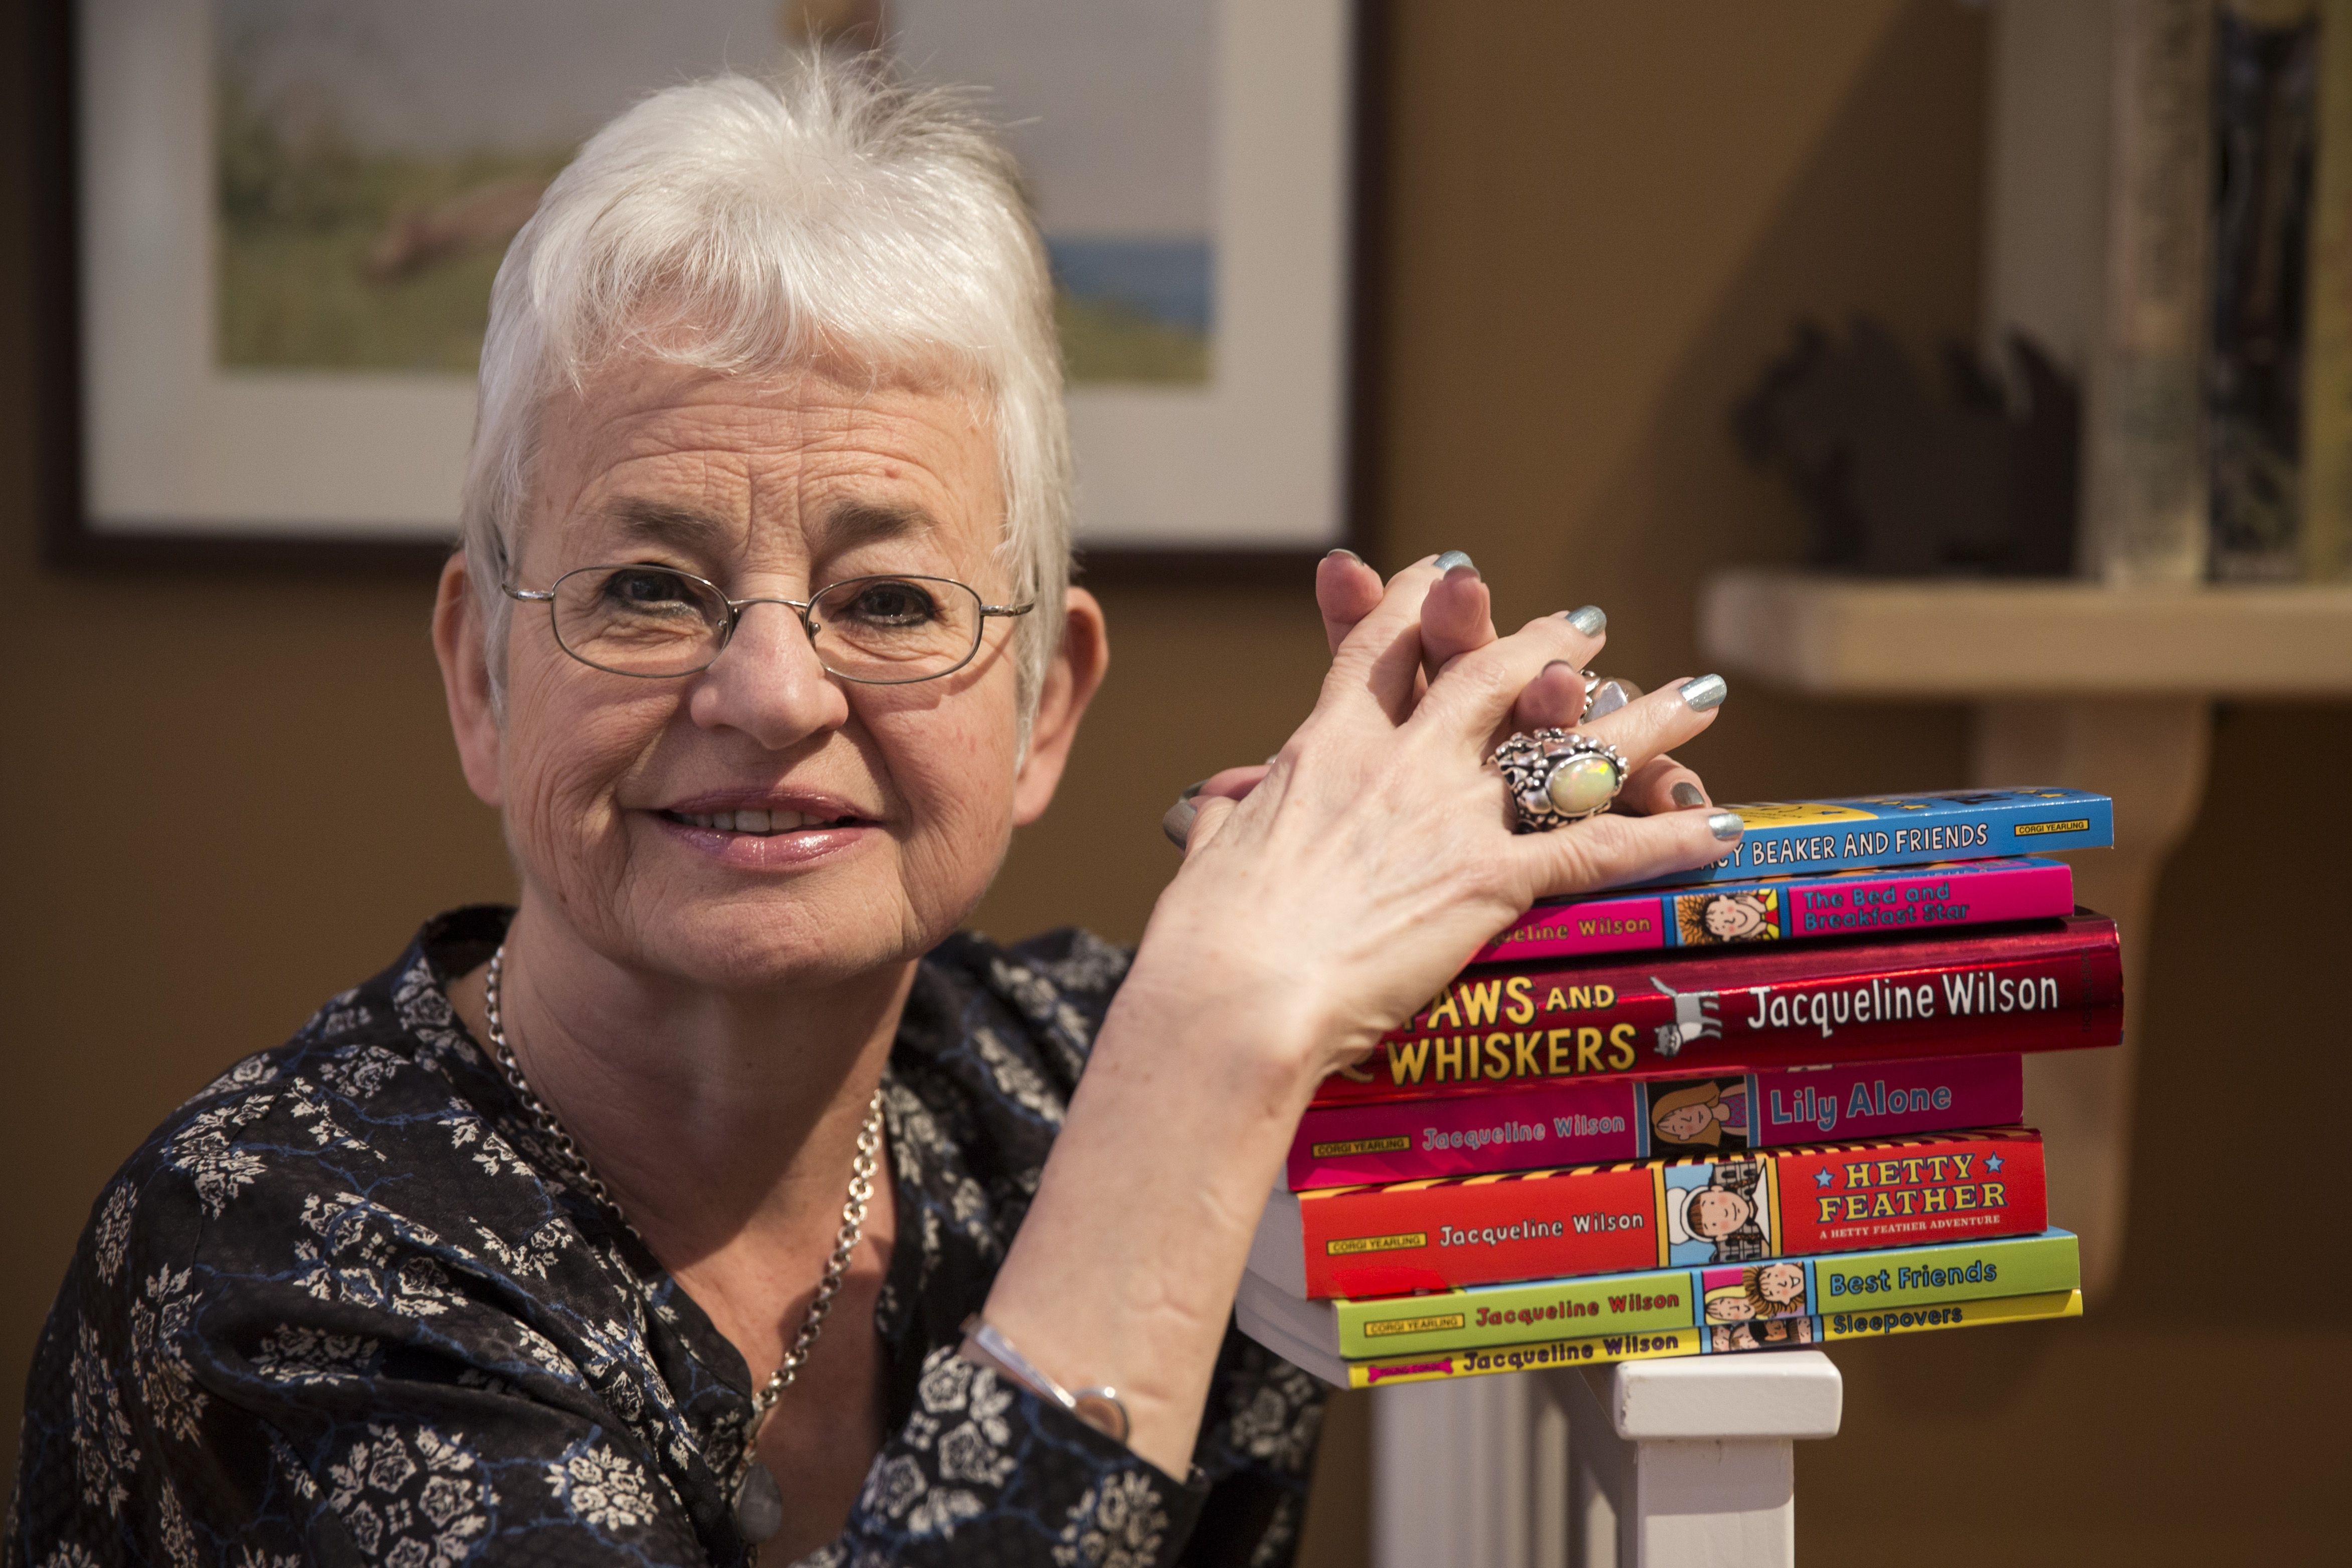 LONDON, ENGLAND - APRIL 03: Children's author Dame Jacqueline Wilson poses for a picture at The V&A's Museum of Childhood on April 3, 2014 in London, England. An exhibition exploring her life and work will open at the museum on April 5, 2014. (Photo by Dan Kitwood/Getty Images)